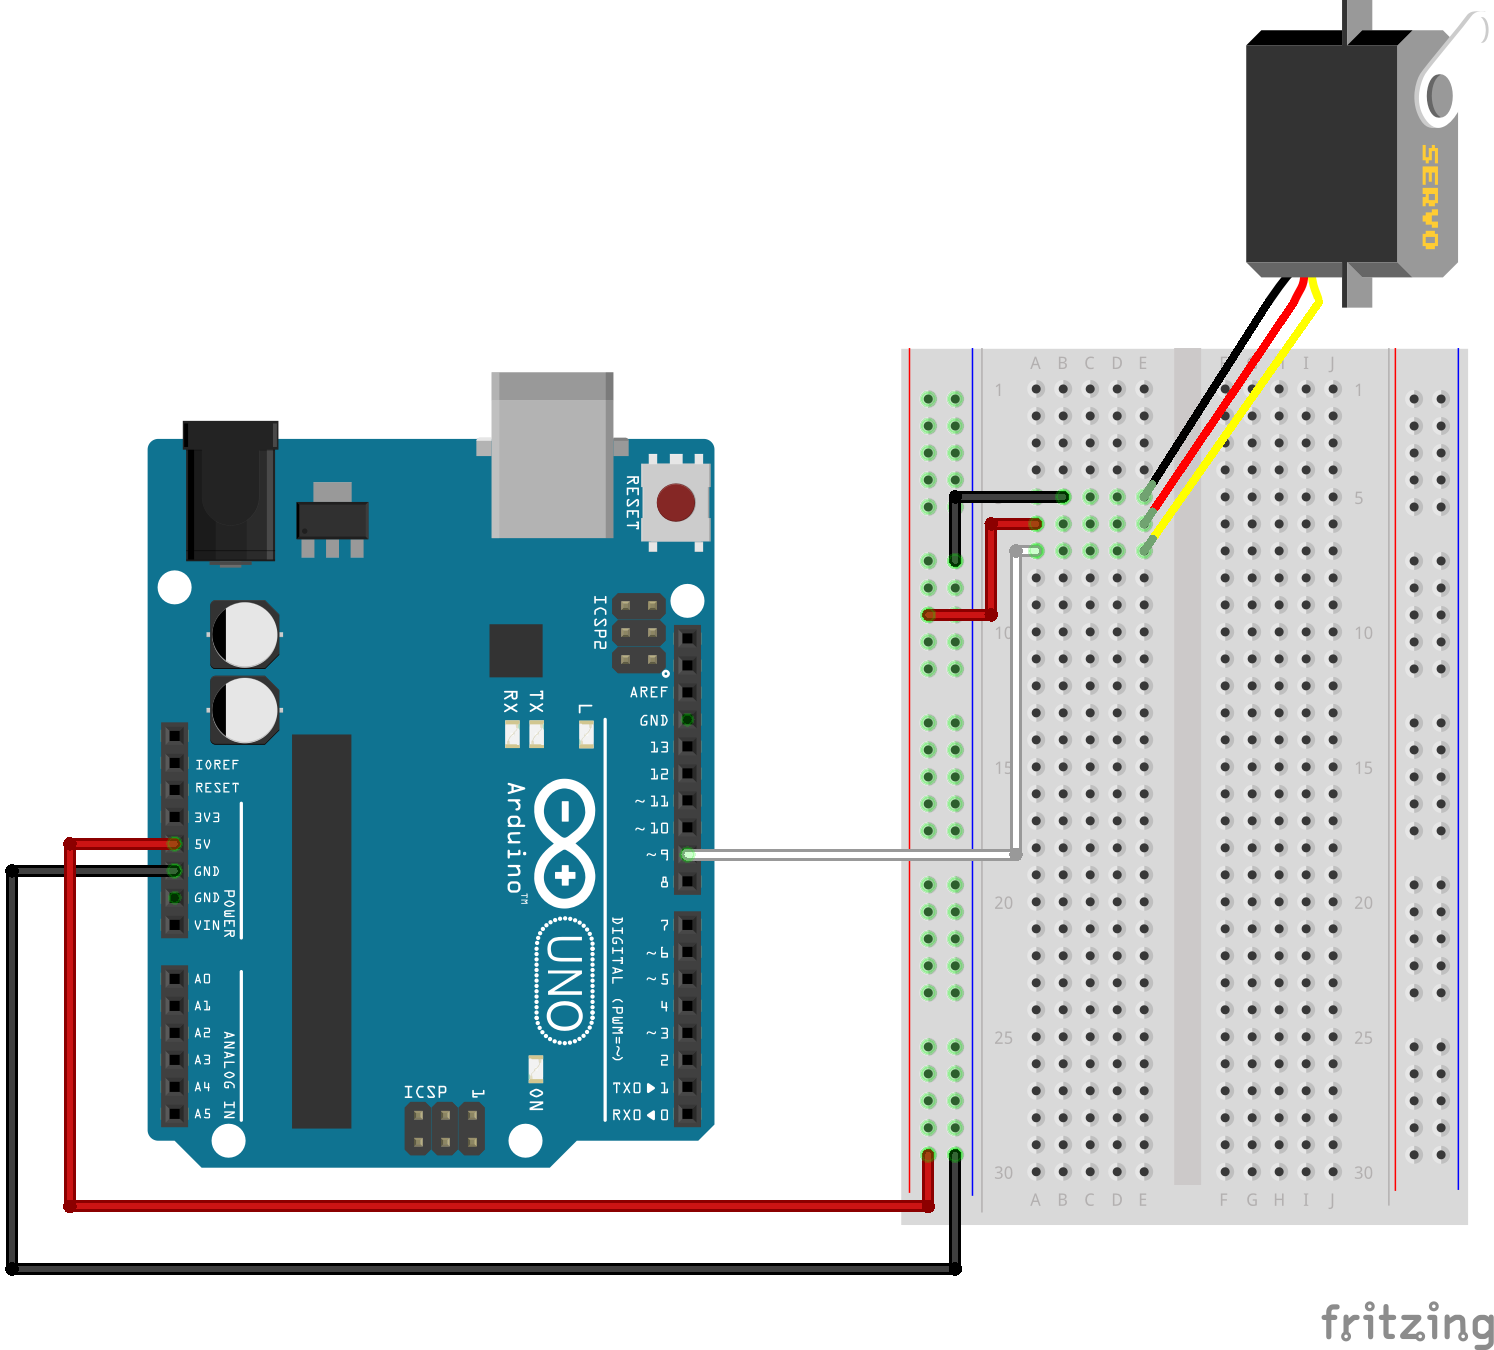 Sik Experiment Guide For Arduino V32 Electrical Schematics Training Get Free Image About Wiring Diagram Fritzing Alt Text Having A Hard Time Seeing The Circuit